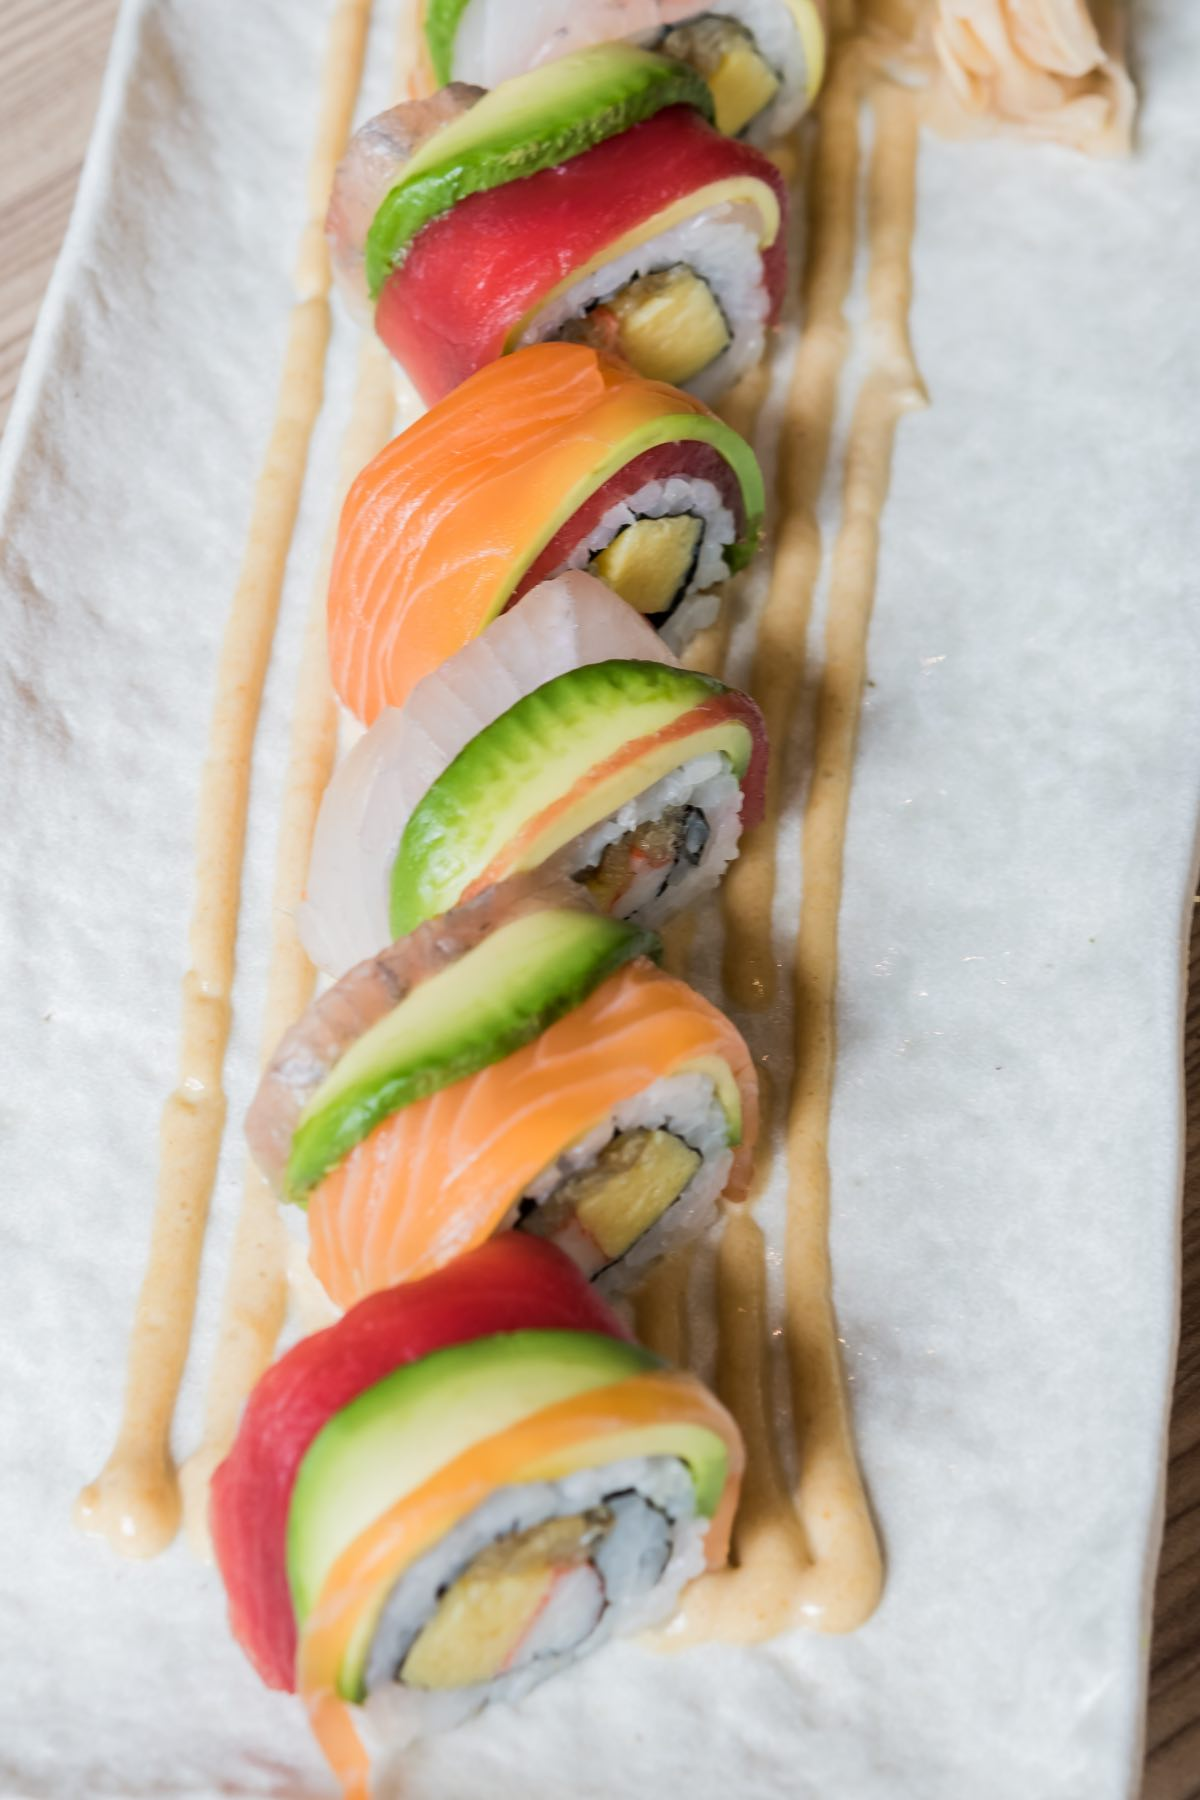 The Rainbow Roll is one of the most popular sushi items at many Japanese restaurants. It's uramaki sushi with the rice on the outside, covering seaweed nori, and filled with creamy avocado and imitation crab. Atop the rainbow sushi roll is a colorful assortment of fresh fish such as salmon, tuna, yellowtail, together with slices of avocado. This roll is a great way to sample many types of fish at once.